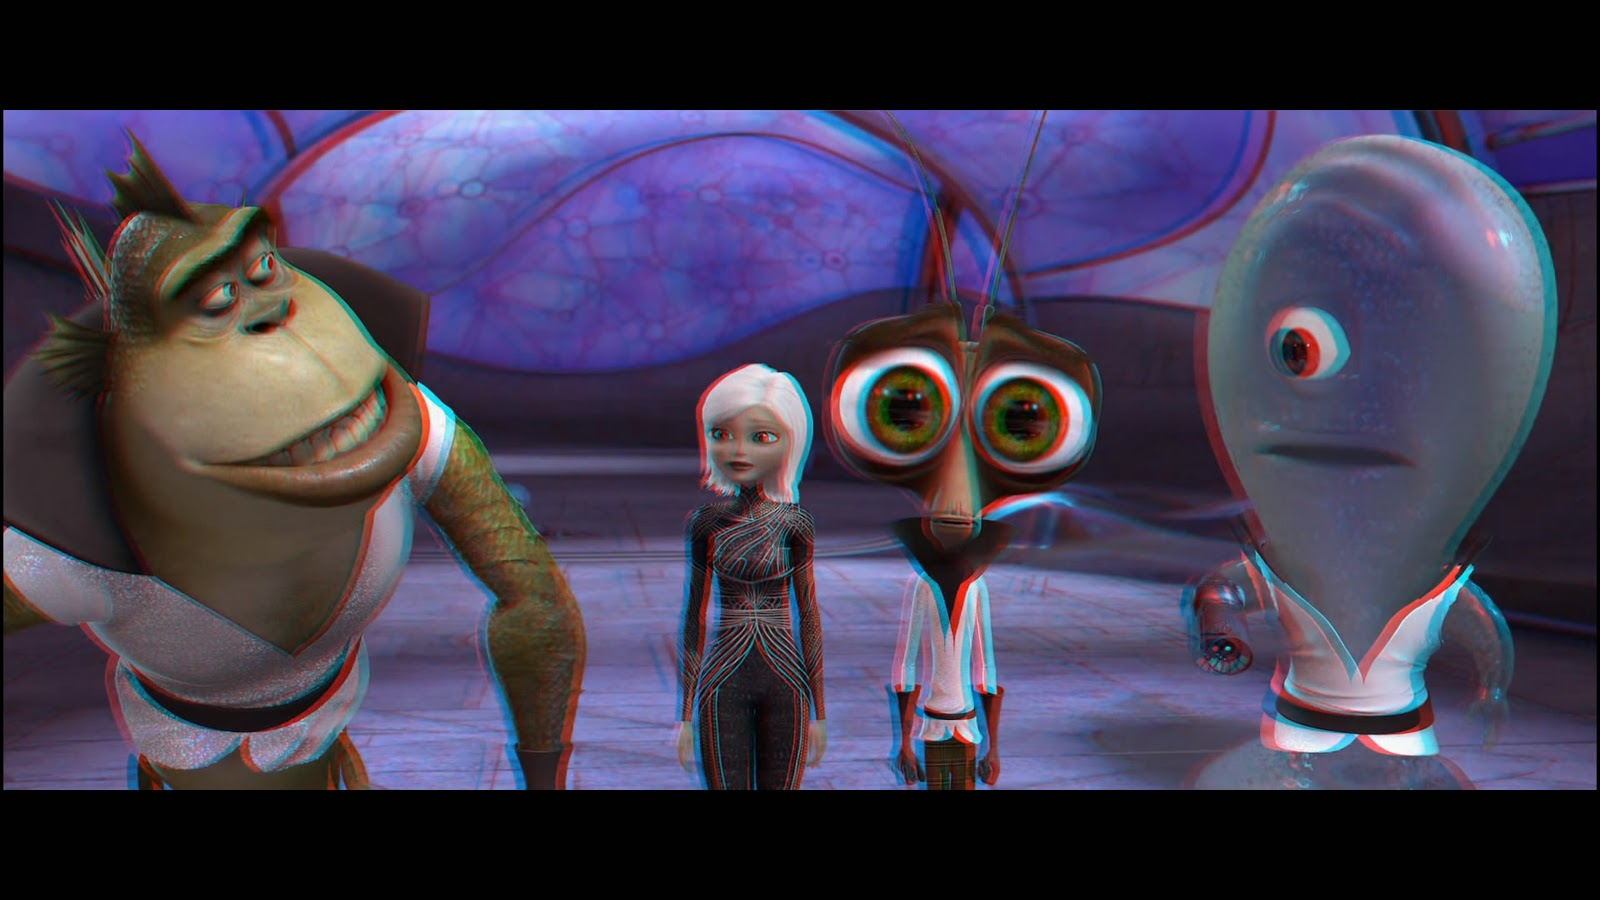 Monsters vs aliens 3d 2009